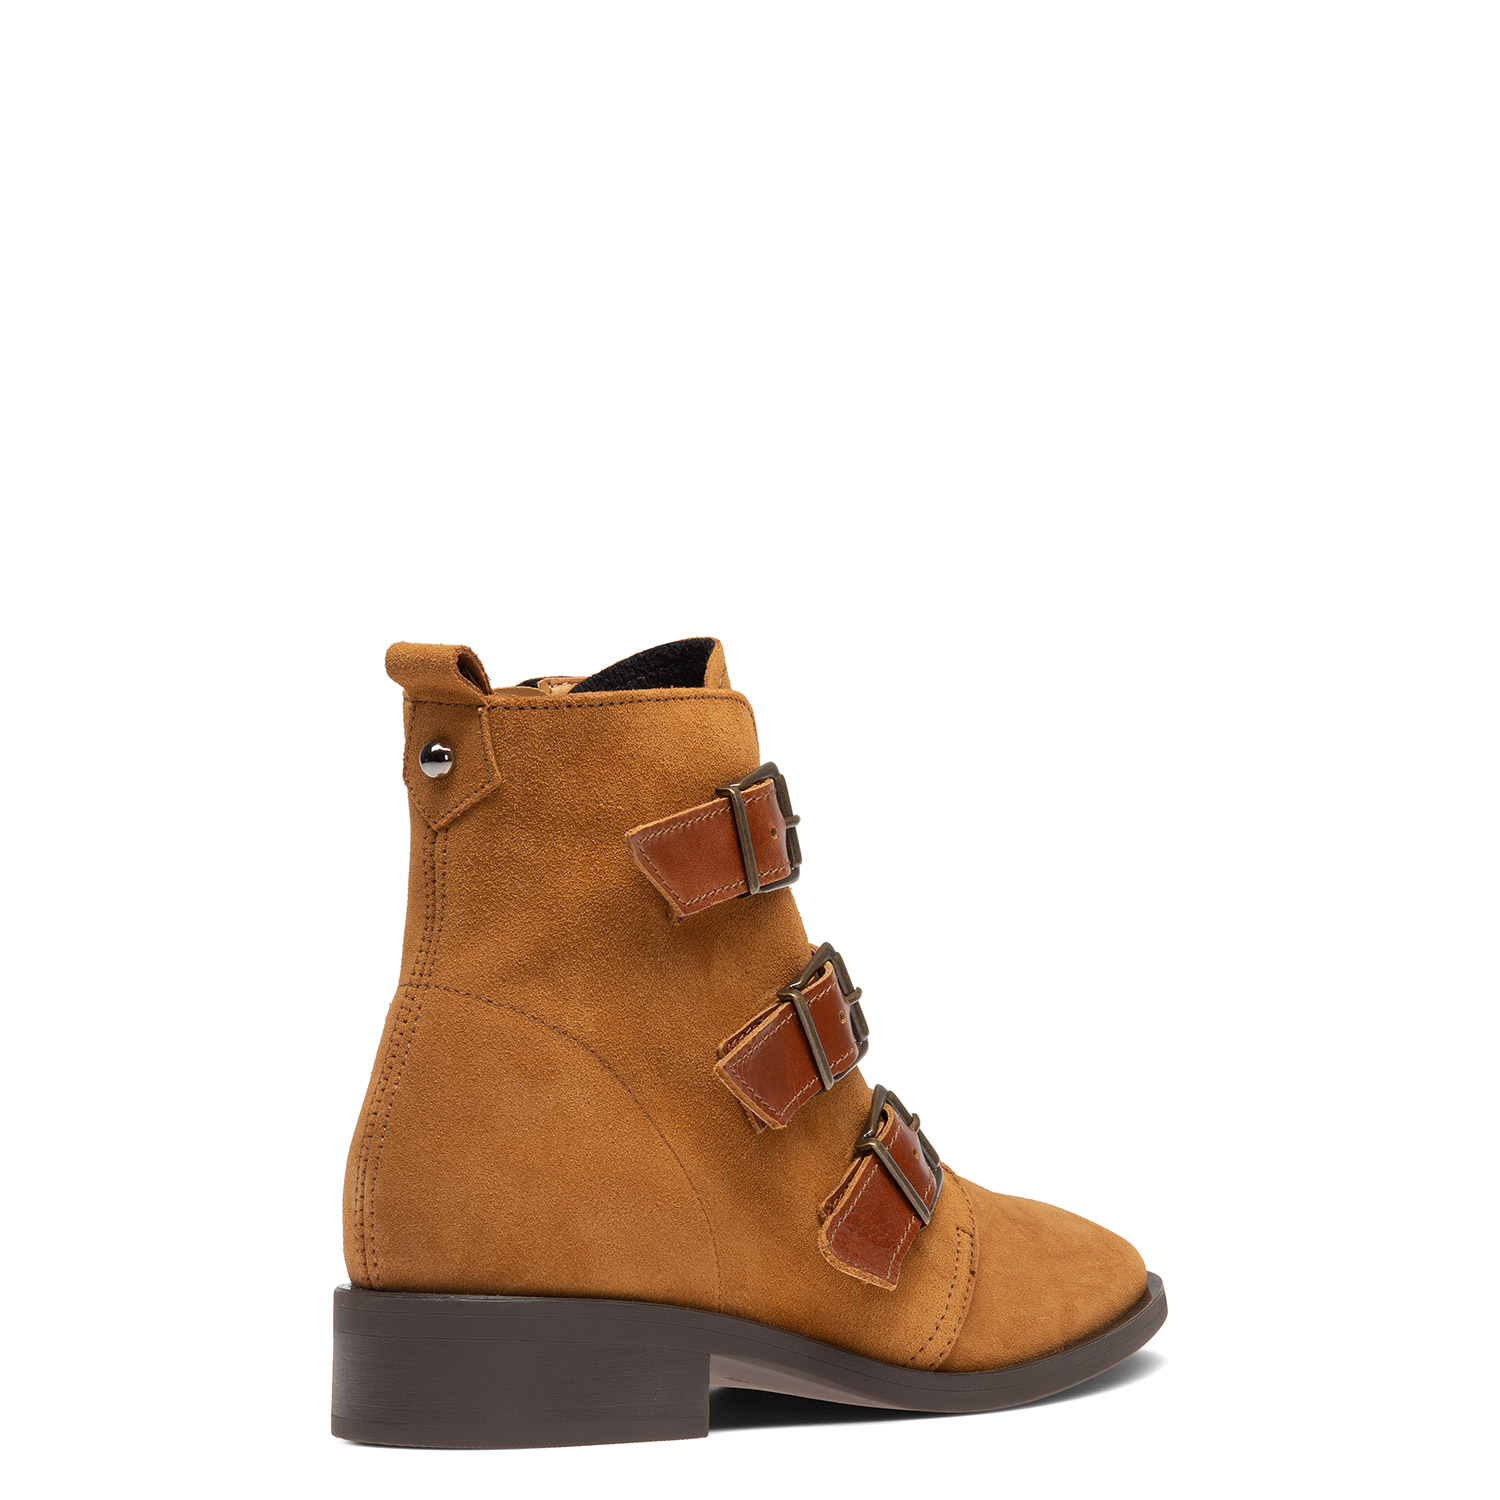 Women's ankle boots PAZOLINI SI-X6315-32